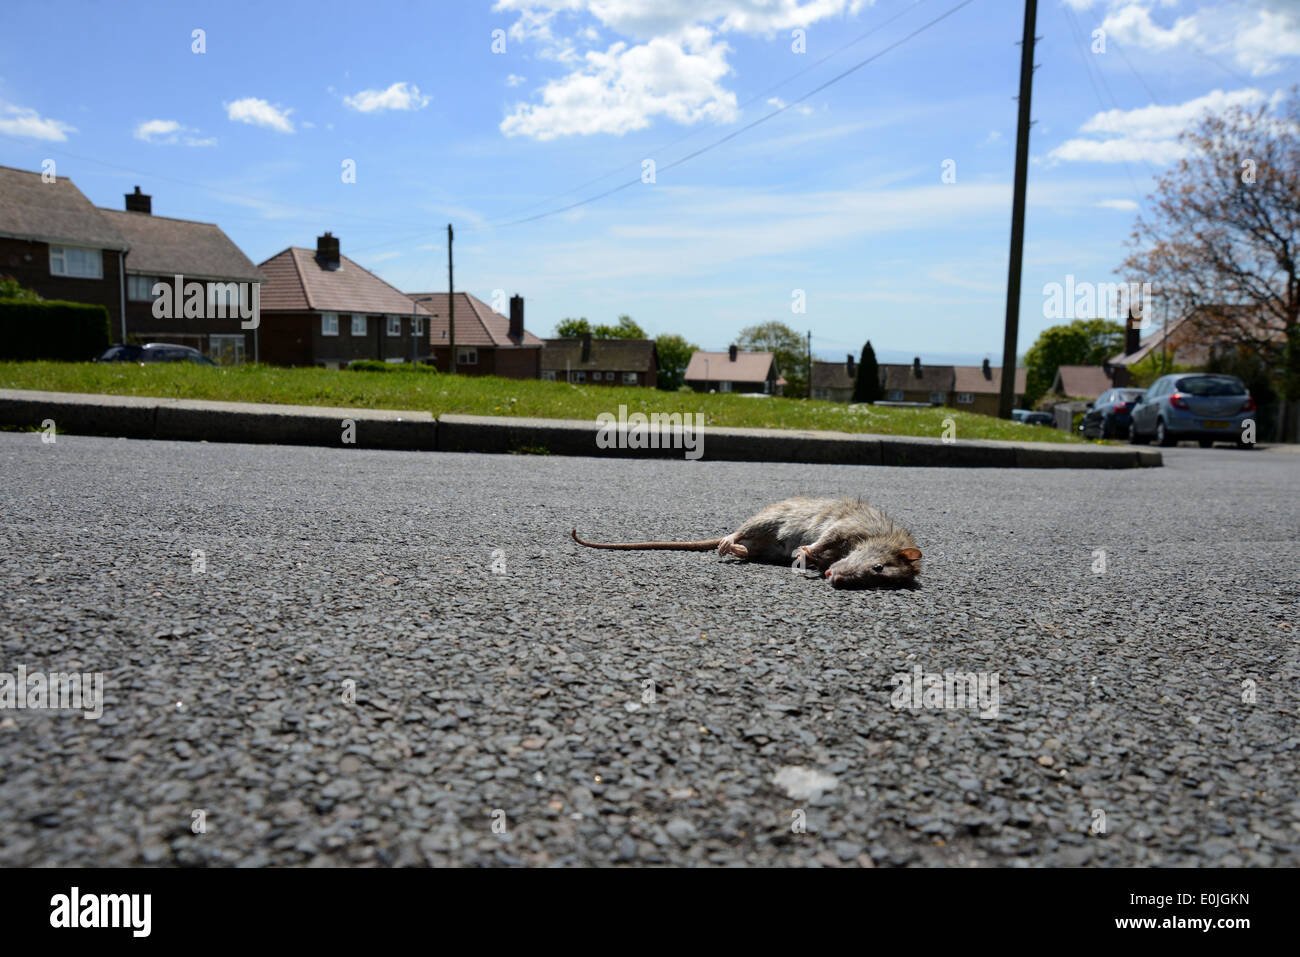 A giant rat pictured on the street in a residential area of Woodingdean, Brighton, East Sussex, UK. - Stock Image